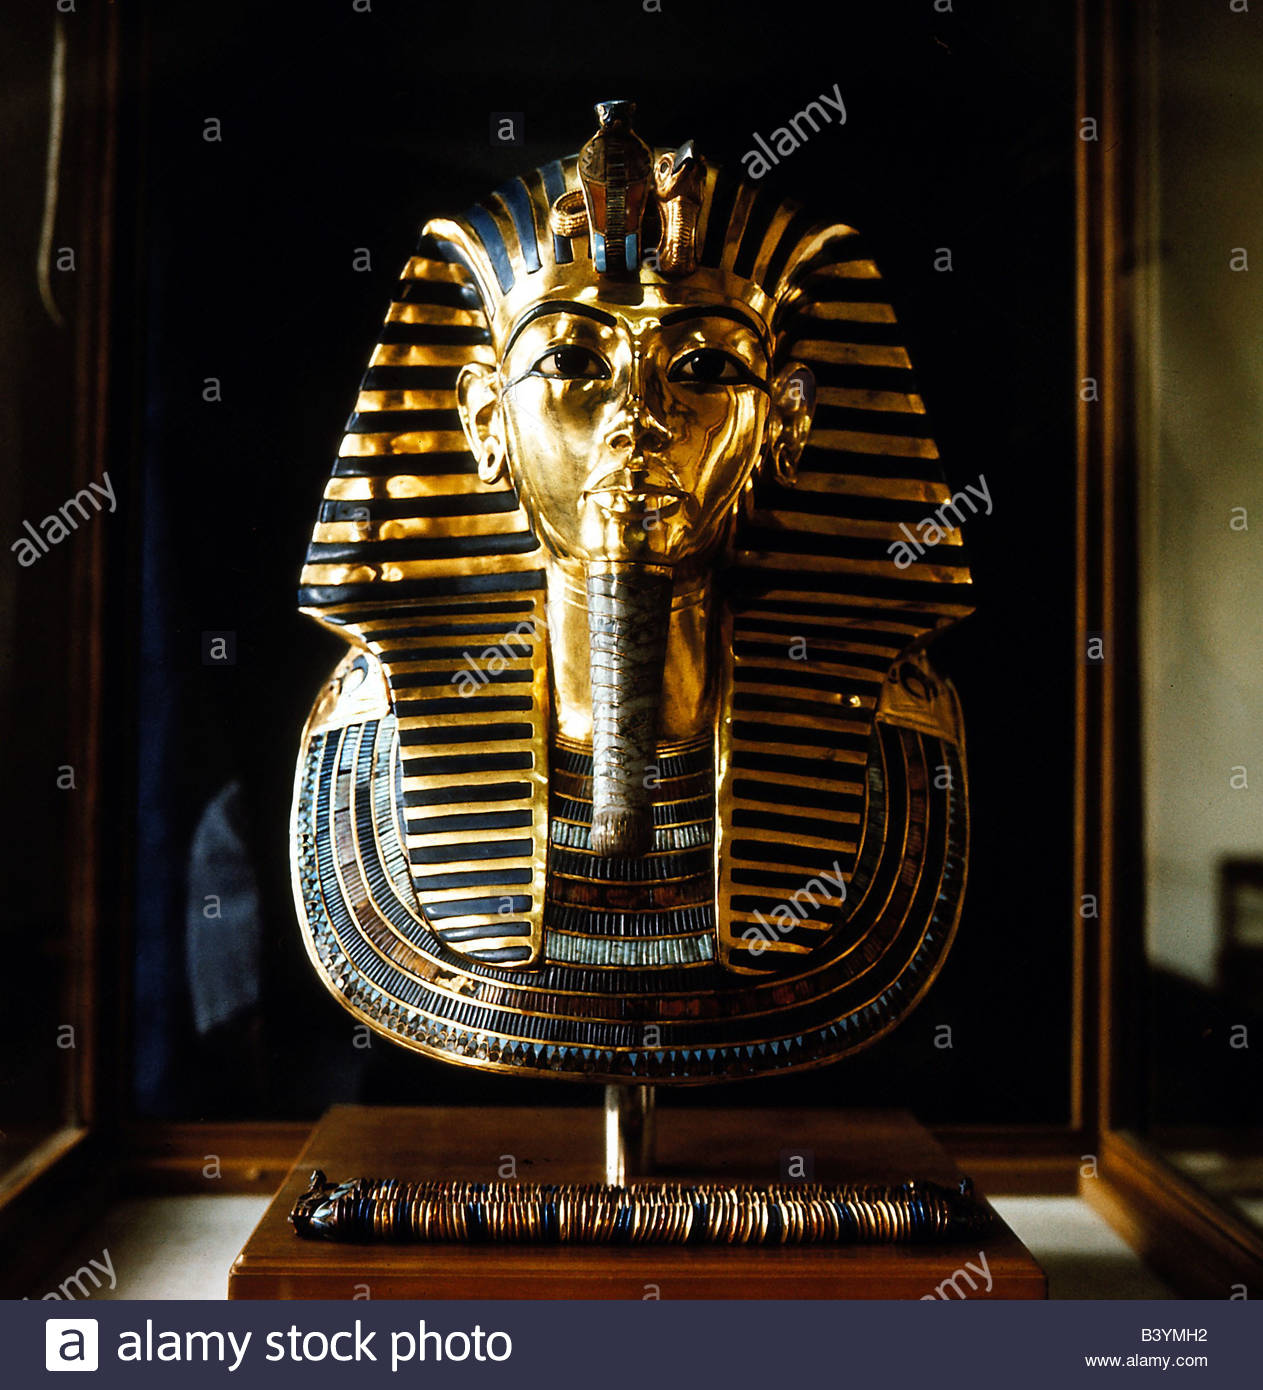 tutankhamen death This biography traces tutankhamun's life from birth to burial, analyzing his parentage, childhood, reign, death and burial tutankhamen: the life and death of the boy-king by christine el mahdy the author is an egyptologist.